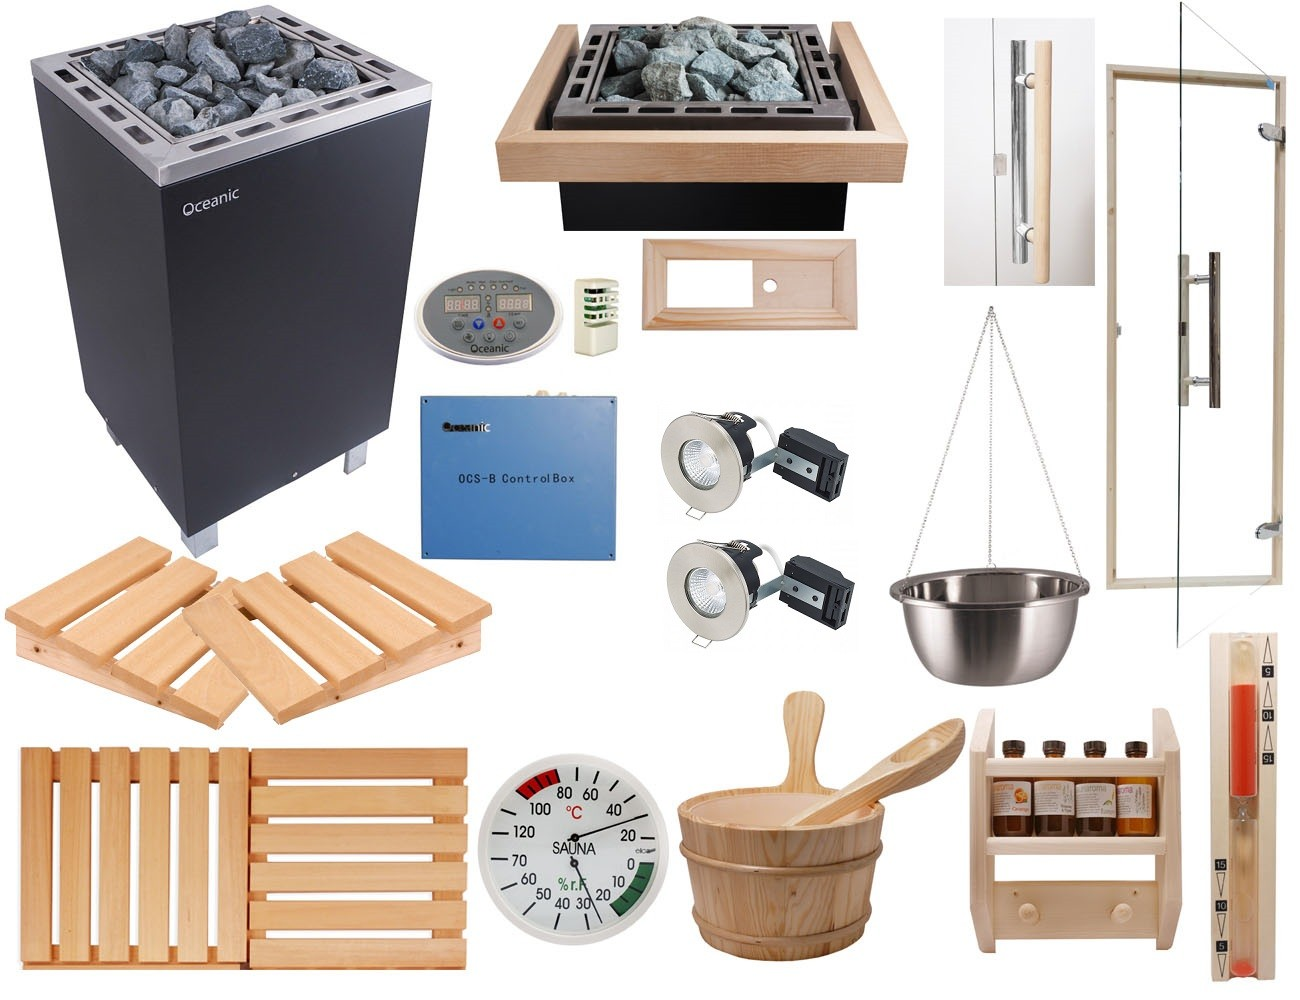 Deluxe Home Sauna Kit with Apollo Sauna Heater & OCSB Controls